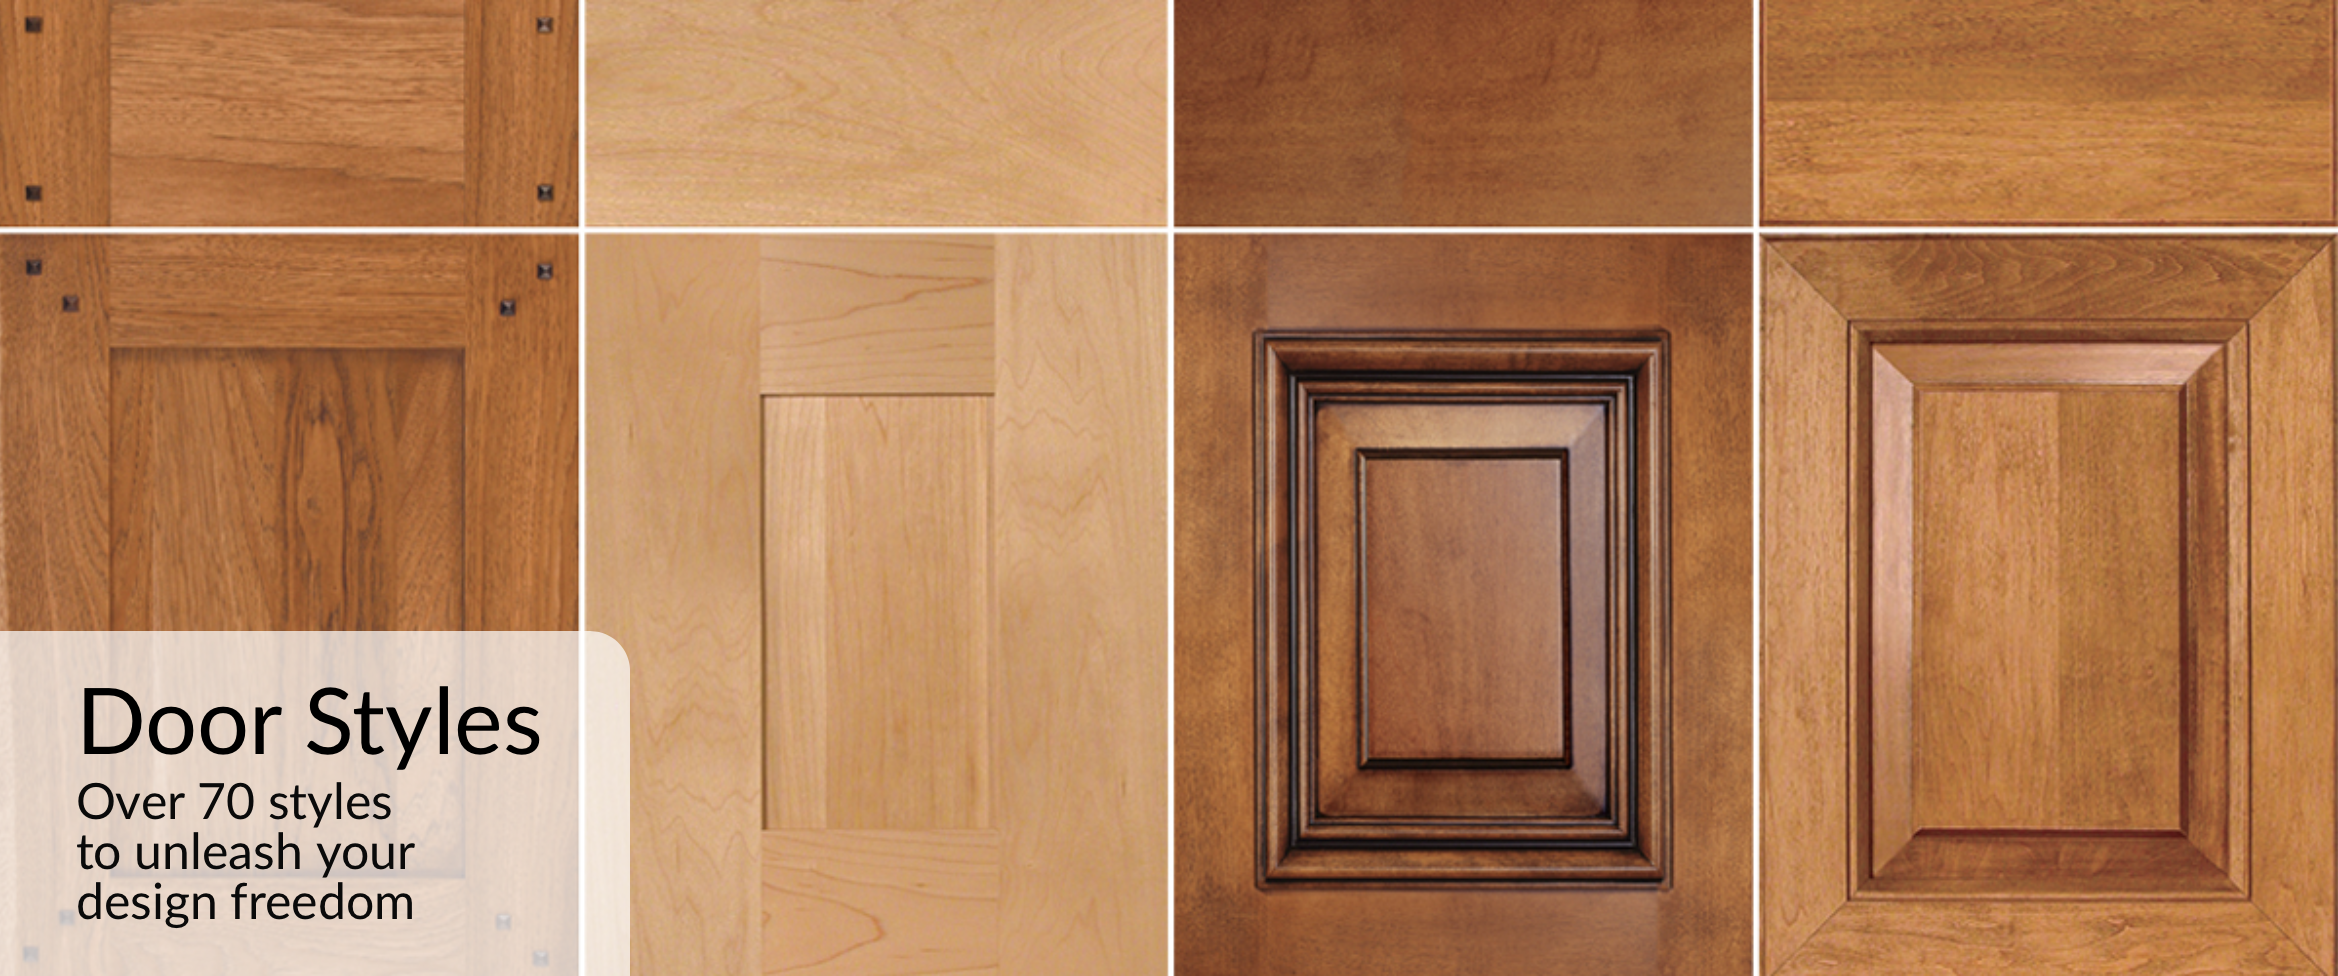 HUNTWOOD - The Toughest Finish in the Cabinet Industry